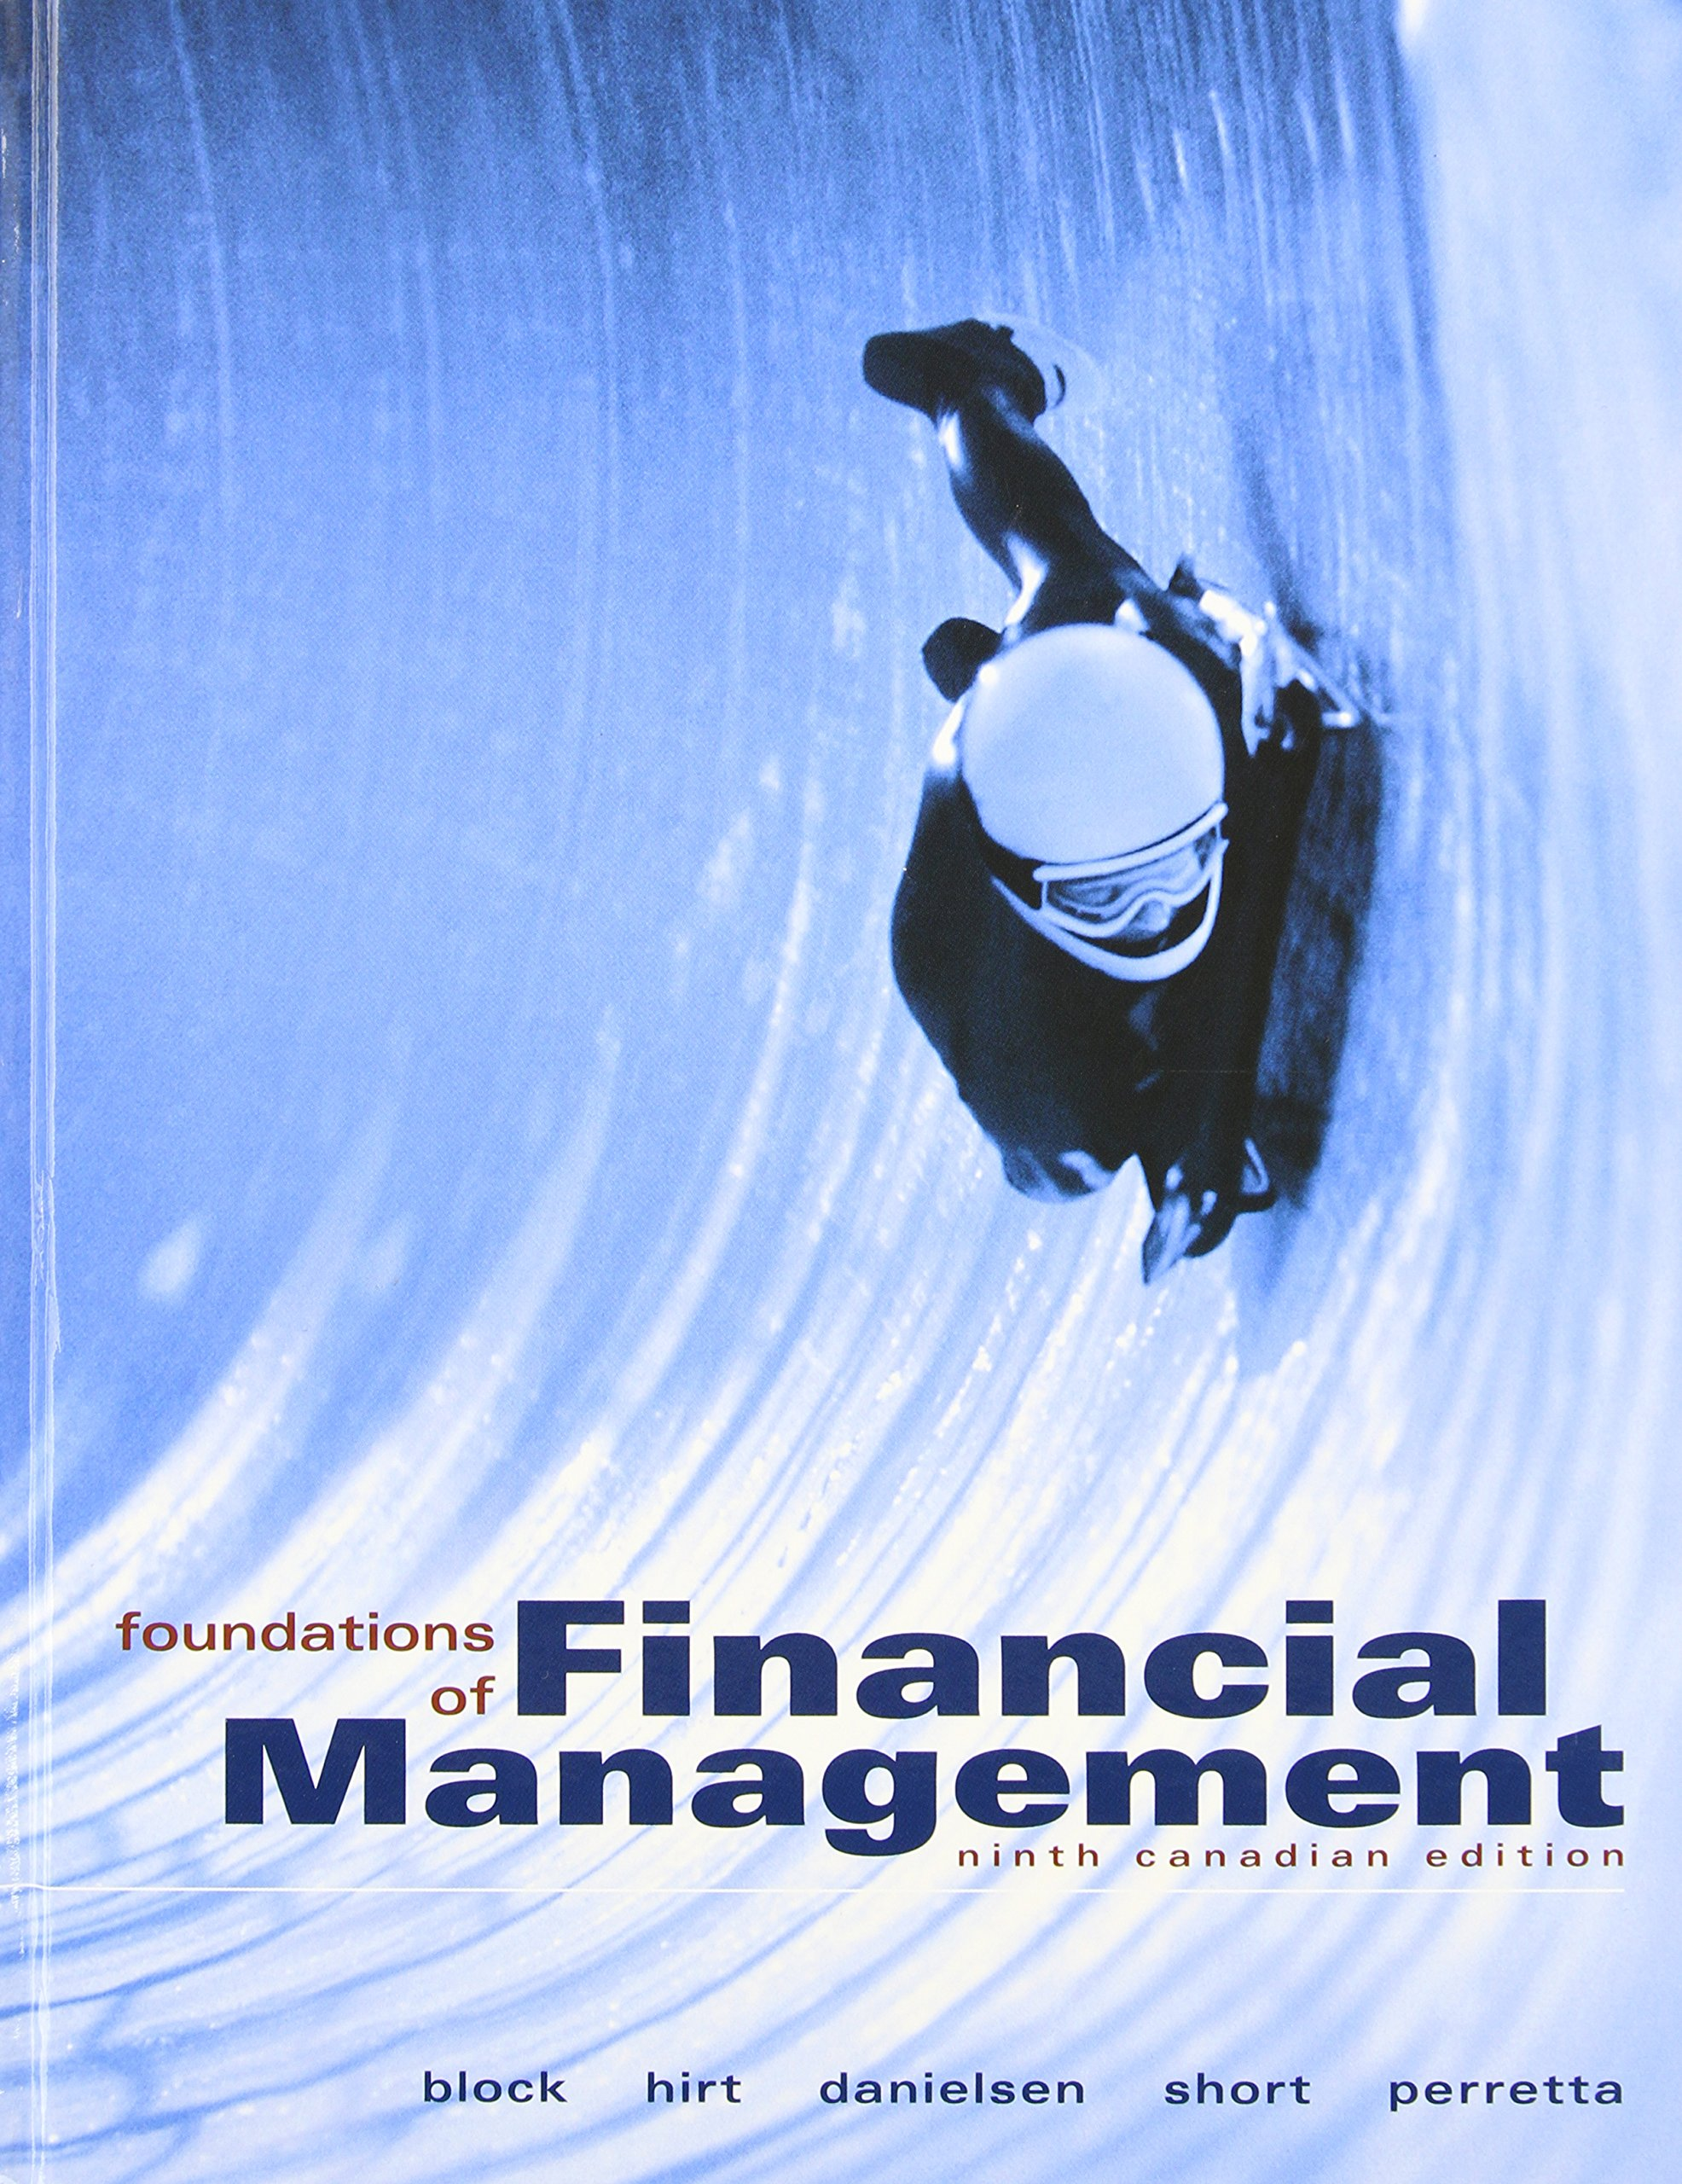 Foundations of Financial Management Canadian 9th Edition By Block, Hirt, Short, Perretta - Solution Manual